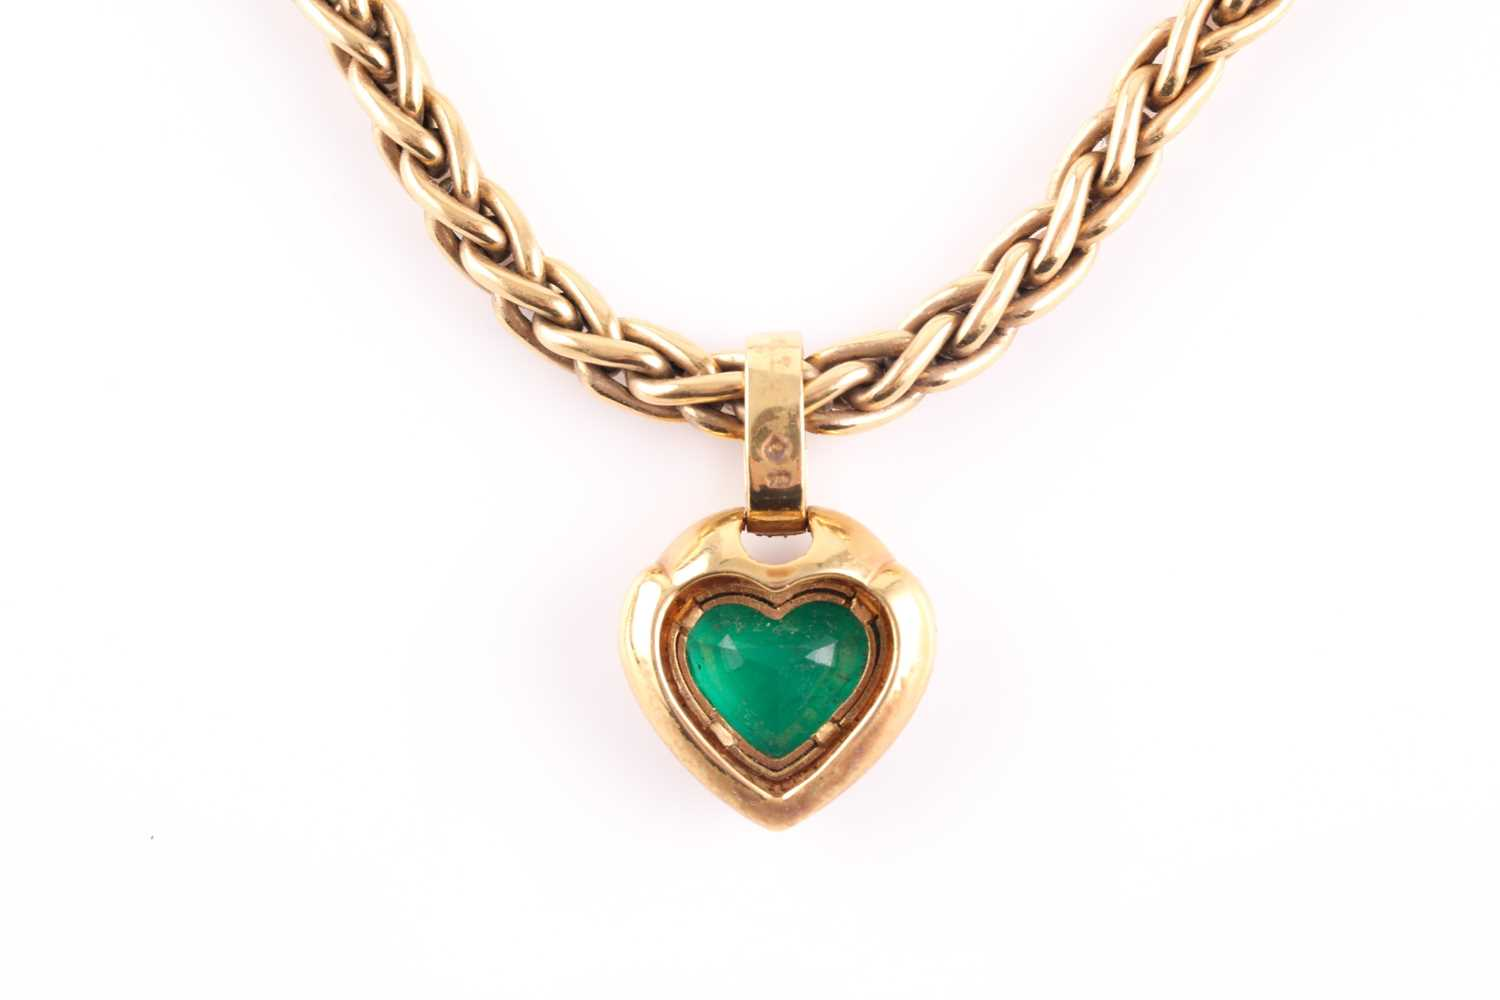 An 18ct yellow gold, diamond, and green stone heart-shaped pendant, with pave-set diamond suspension - Image 2 of 5